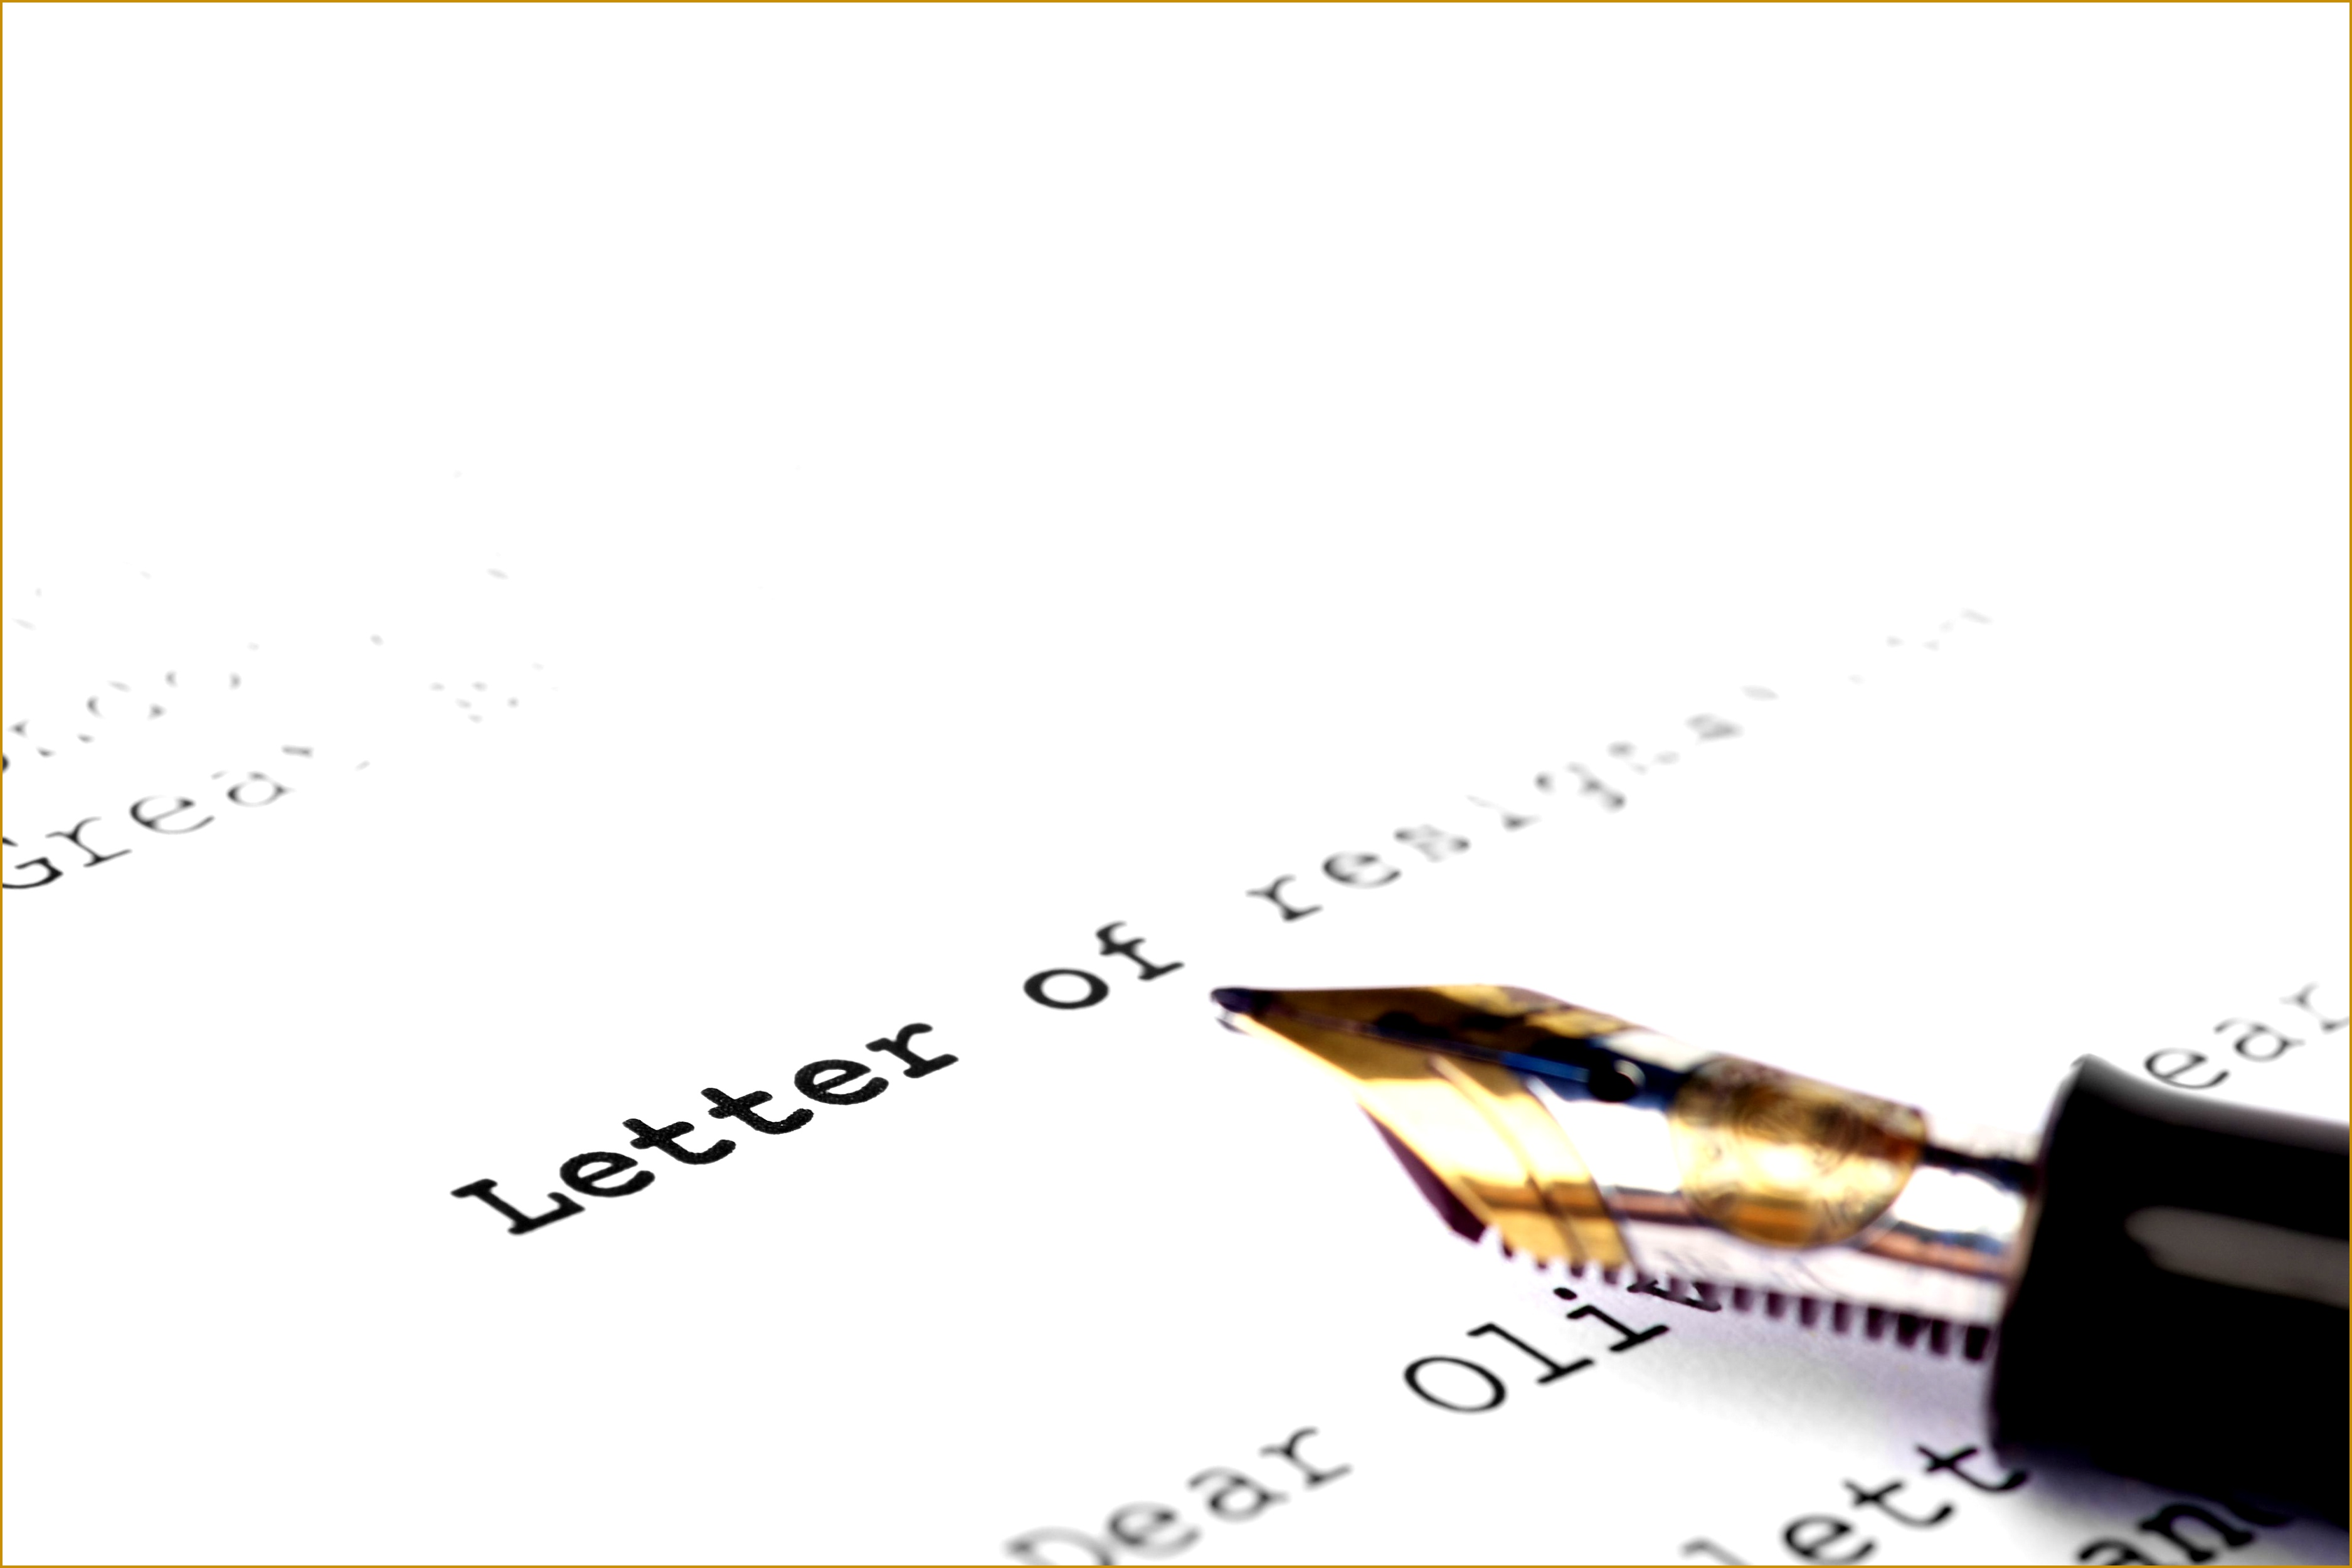 Resignation Letter Sample With 24 Hours Notice 25003750